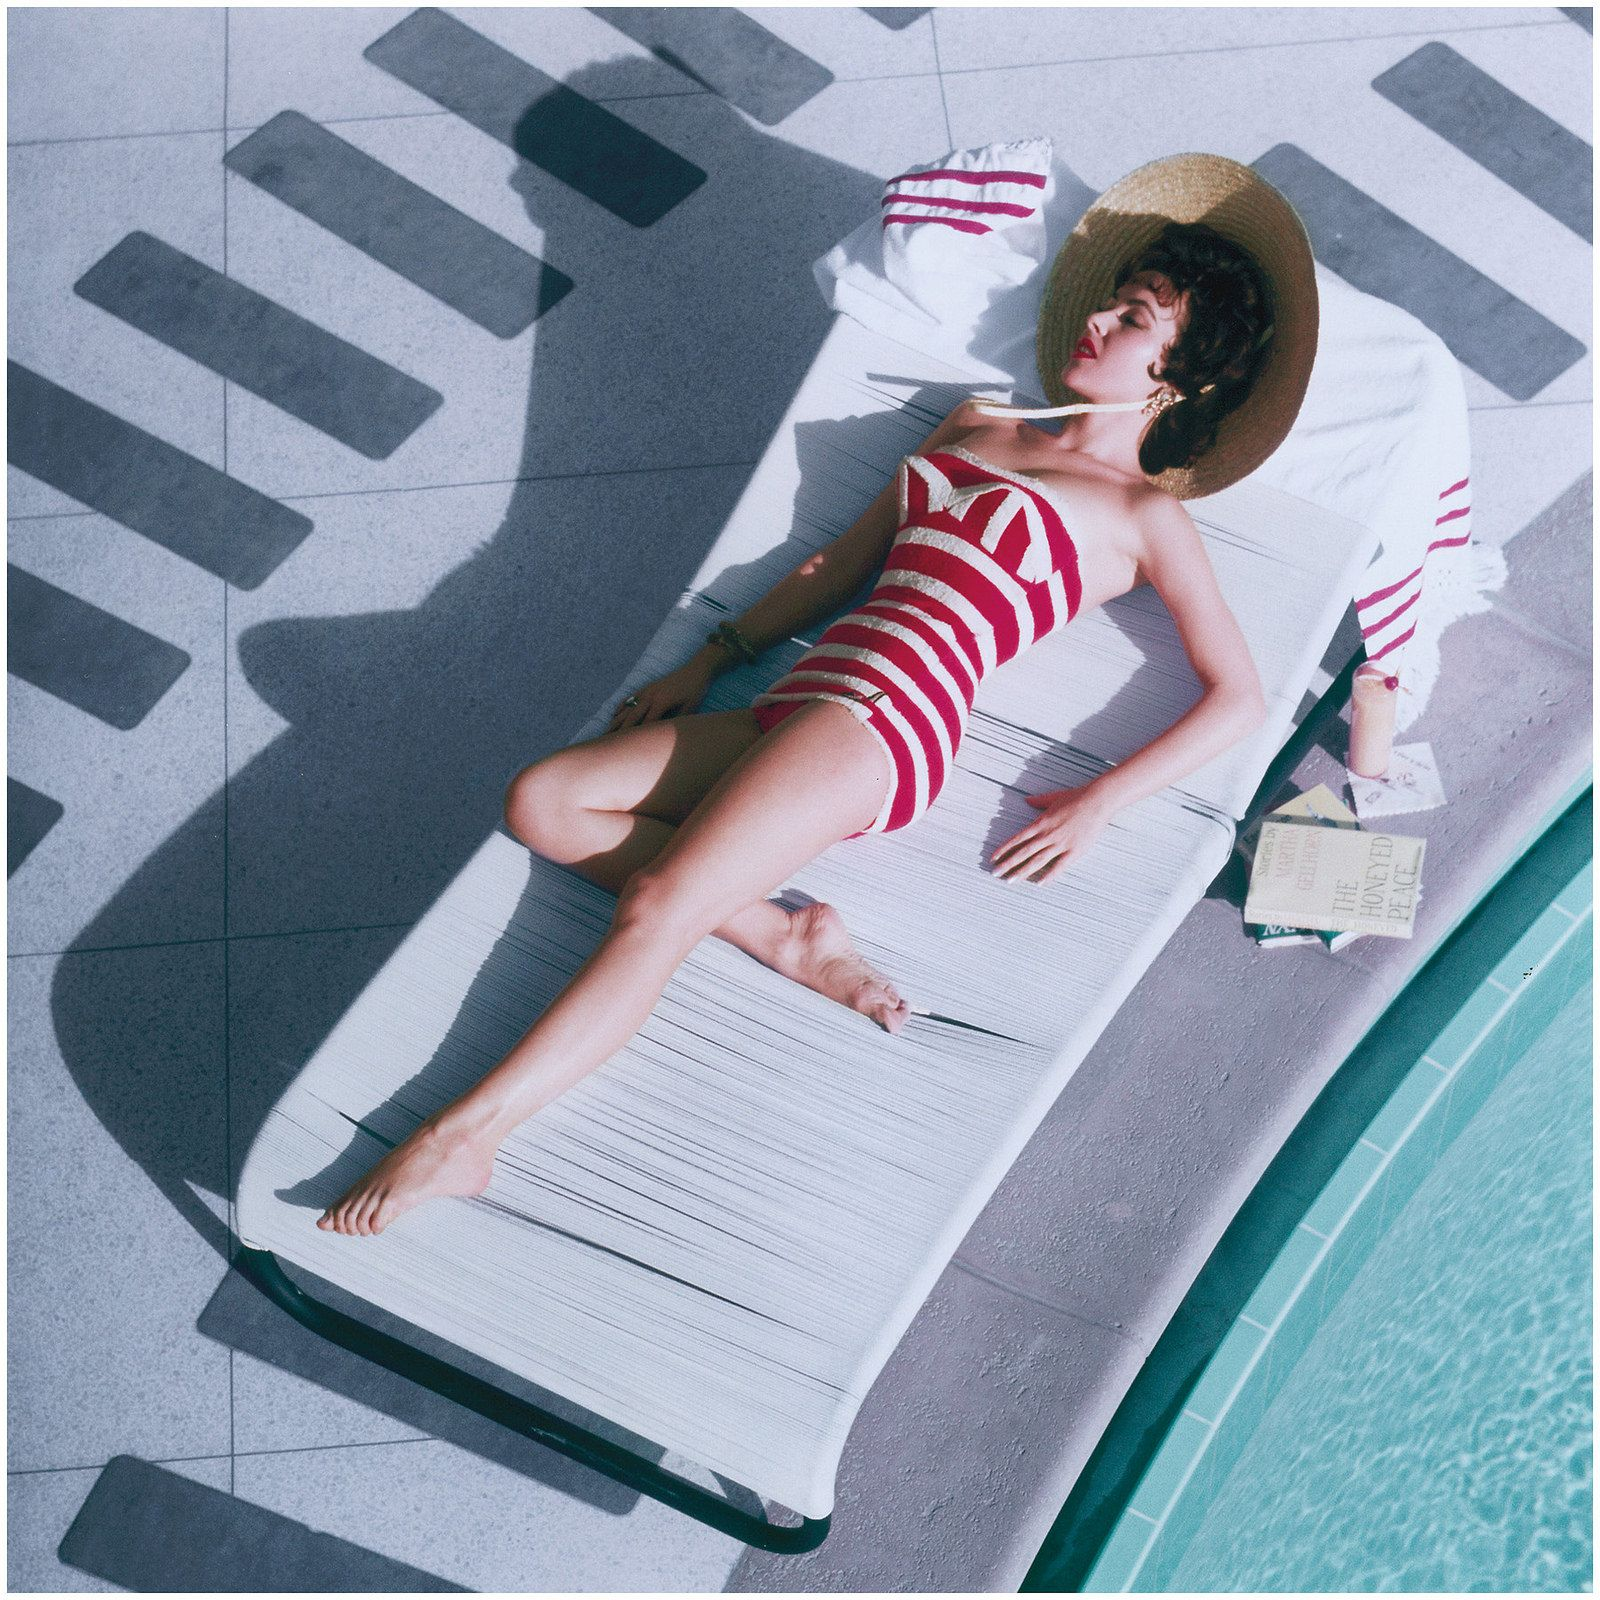 Austrian actress Mara Lane lounging by the pool in a red and white striped bathing costume at the Sands Hotel, Las Vegas, 1954. (Photo by Slim Aarons/Hulton Archive/Getty Images)